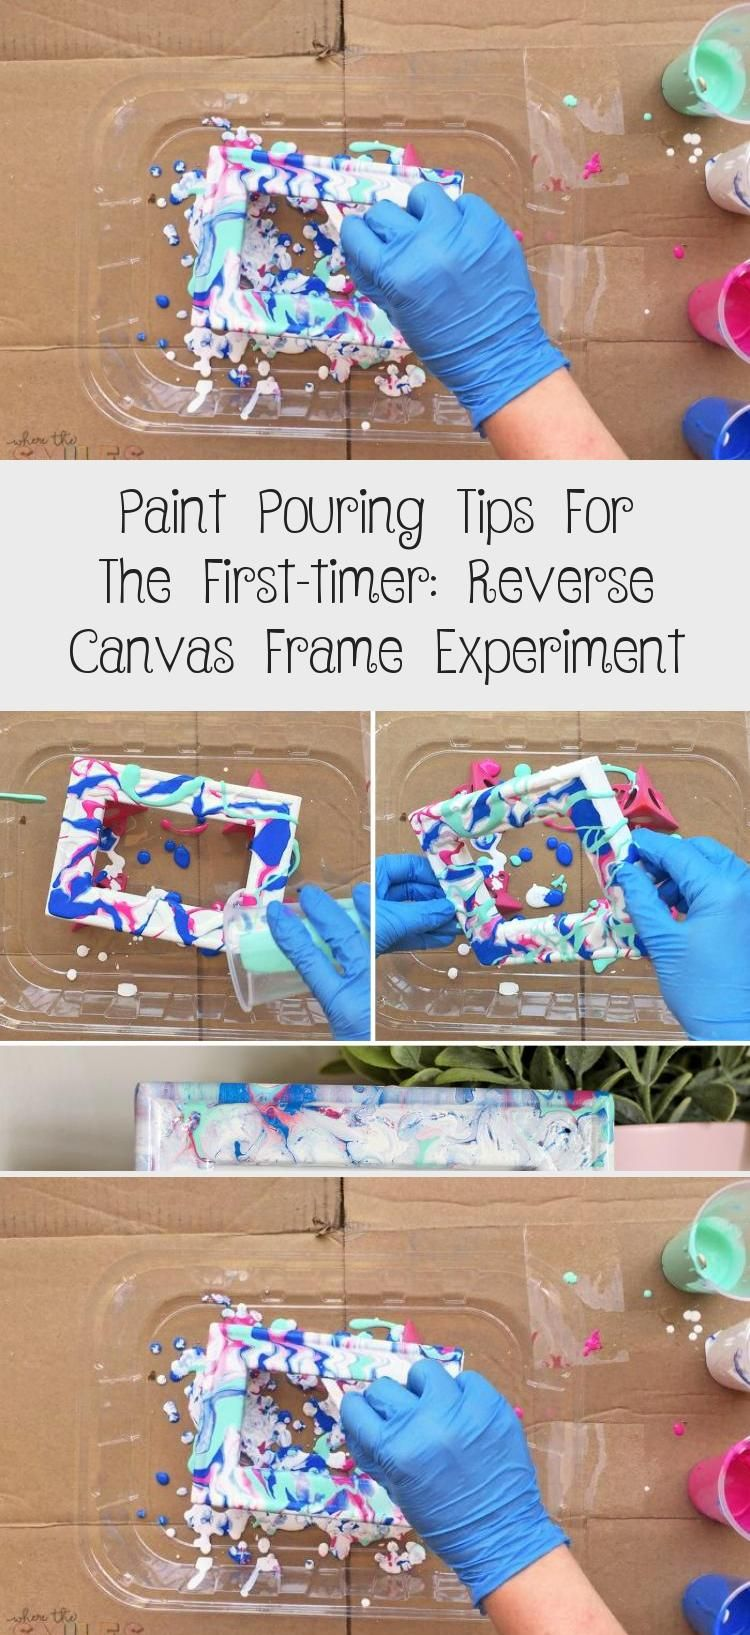 Learn how to make your own paint pouring art with these simple tips for beginners! Paint Pouring Tips for the First-Timer: Reverse Canvas Frame Experiment | Where The Smiles Have Been #paint #paintpouring #acrylicpaint #acrylicpaintpouring #art #paintingtips #reversecanvas #HomeDecorDIYVideosProjects #HomeDecorDIYVideosCheap #HomeDecorDIYVideosApartment #HomeDecorDIYVideosBedroom #HomeDecorDIYVideosOnABudget